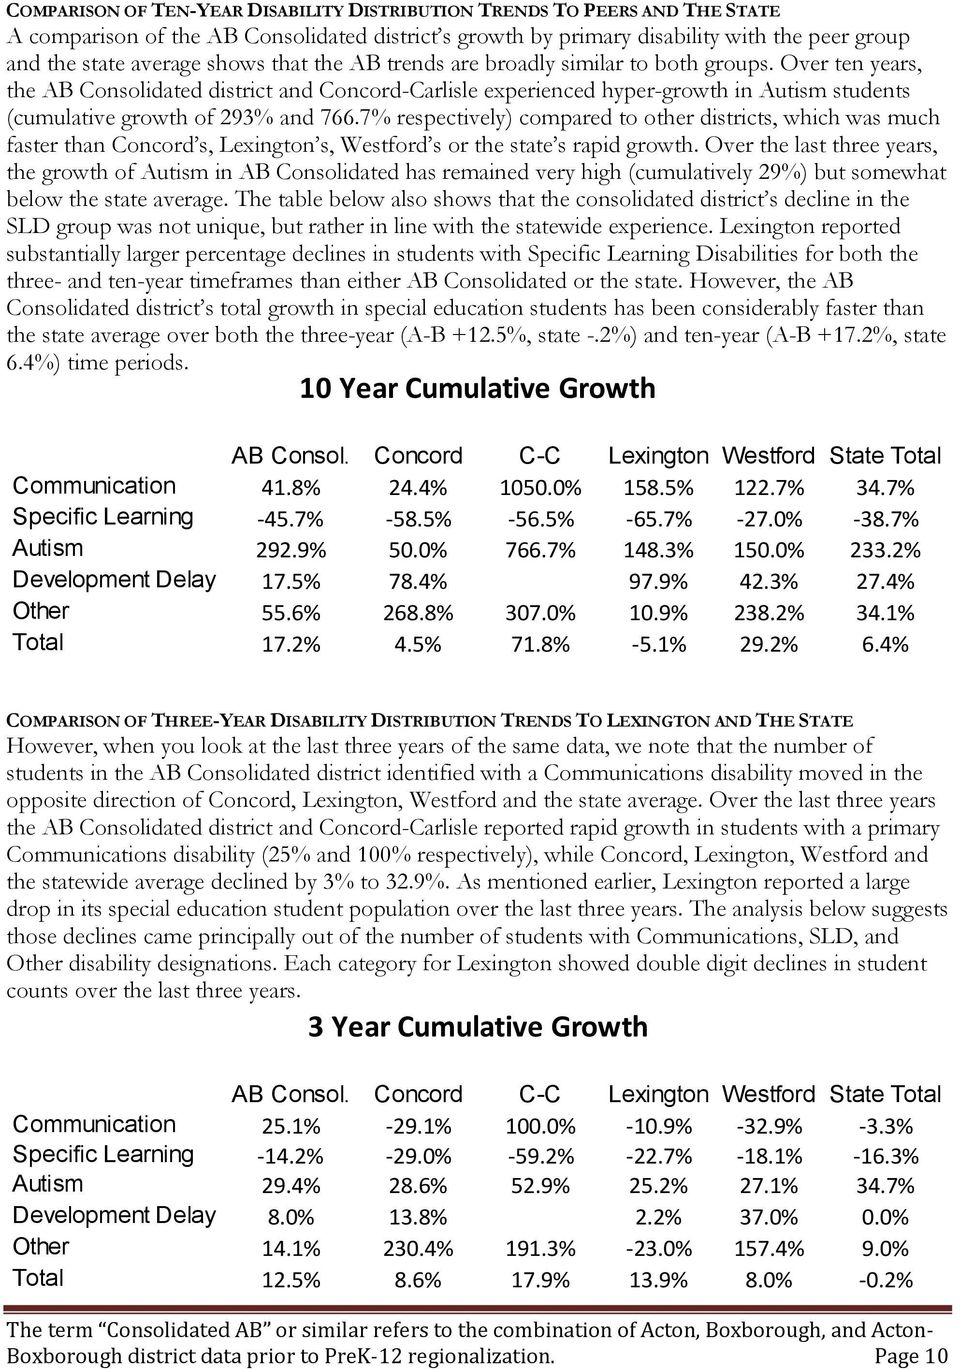 Over ten years, the AB Consolidated district and Concord-Carlisle experienced hyper-growth in Autism students (cumulative growth of 293% and 766.